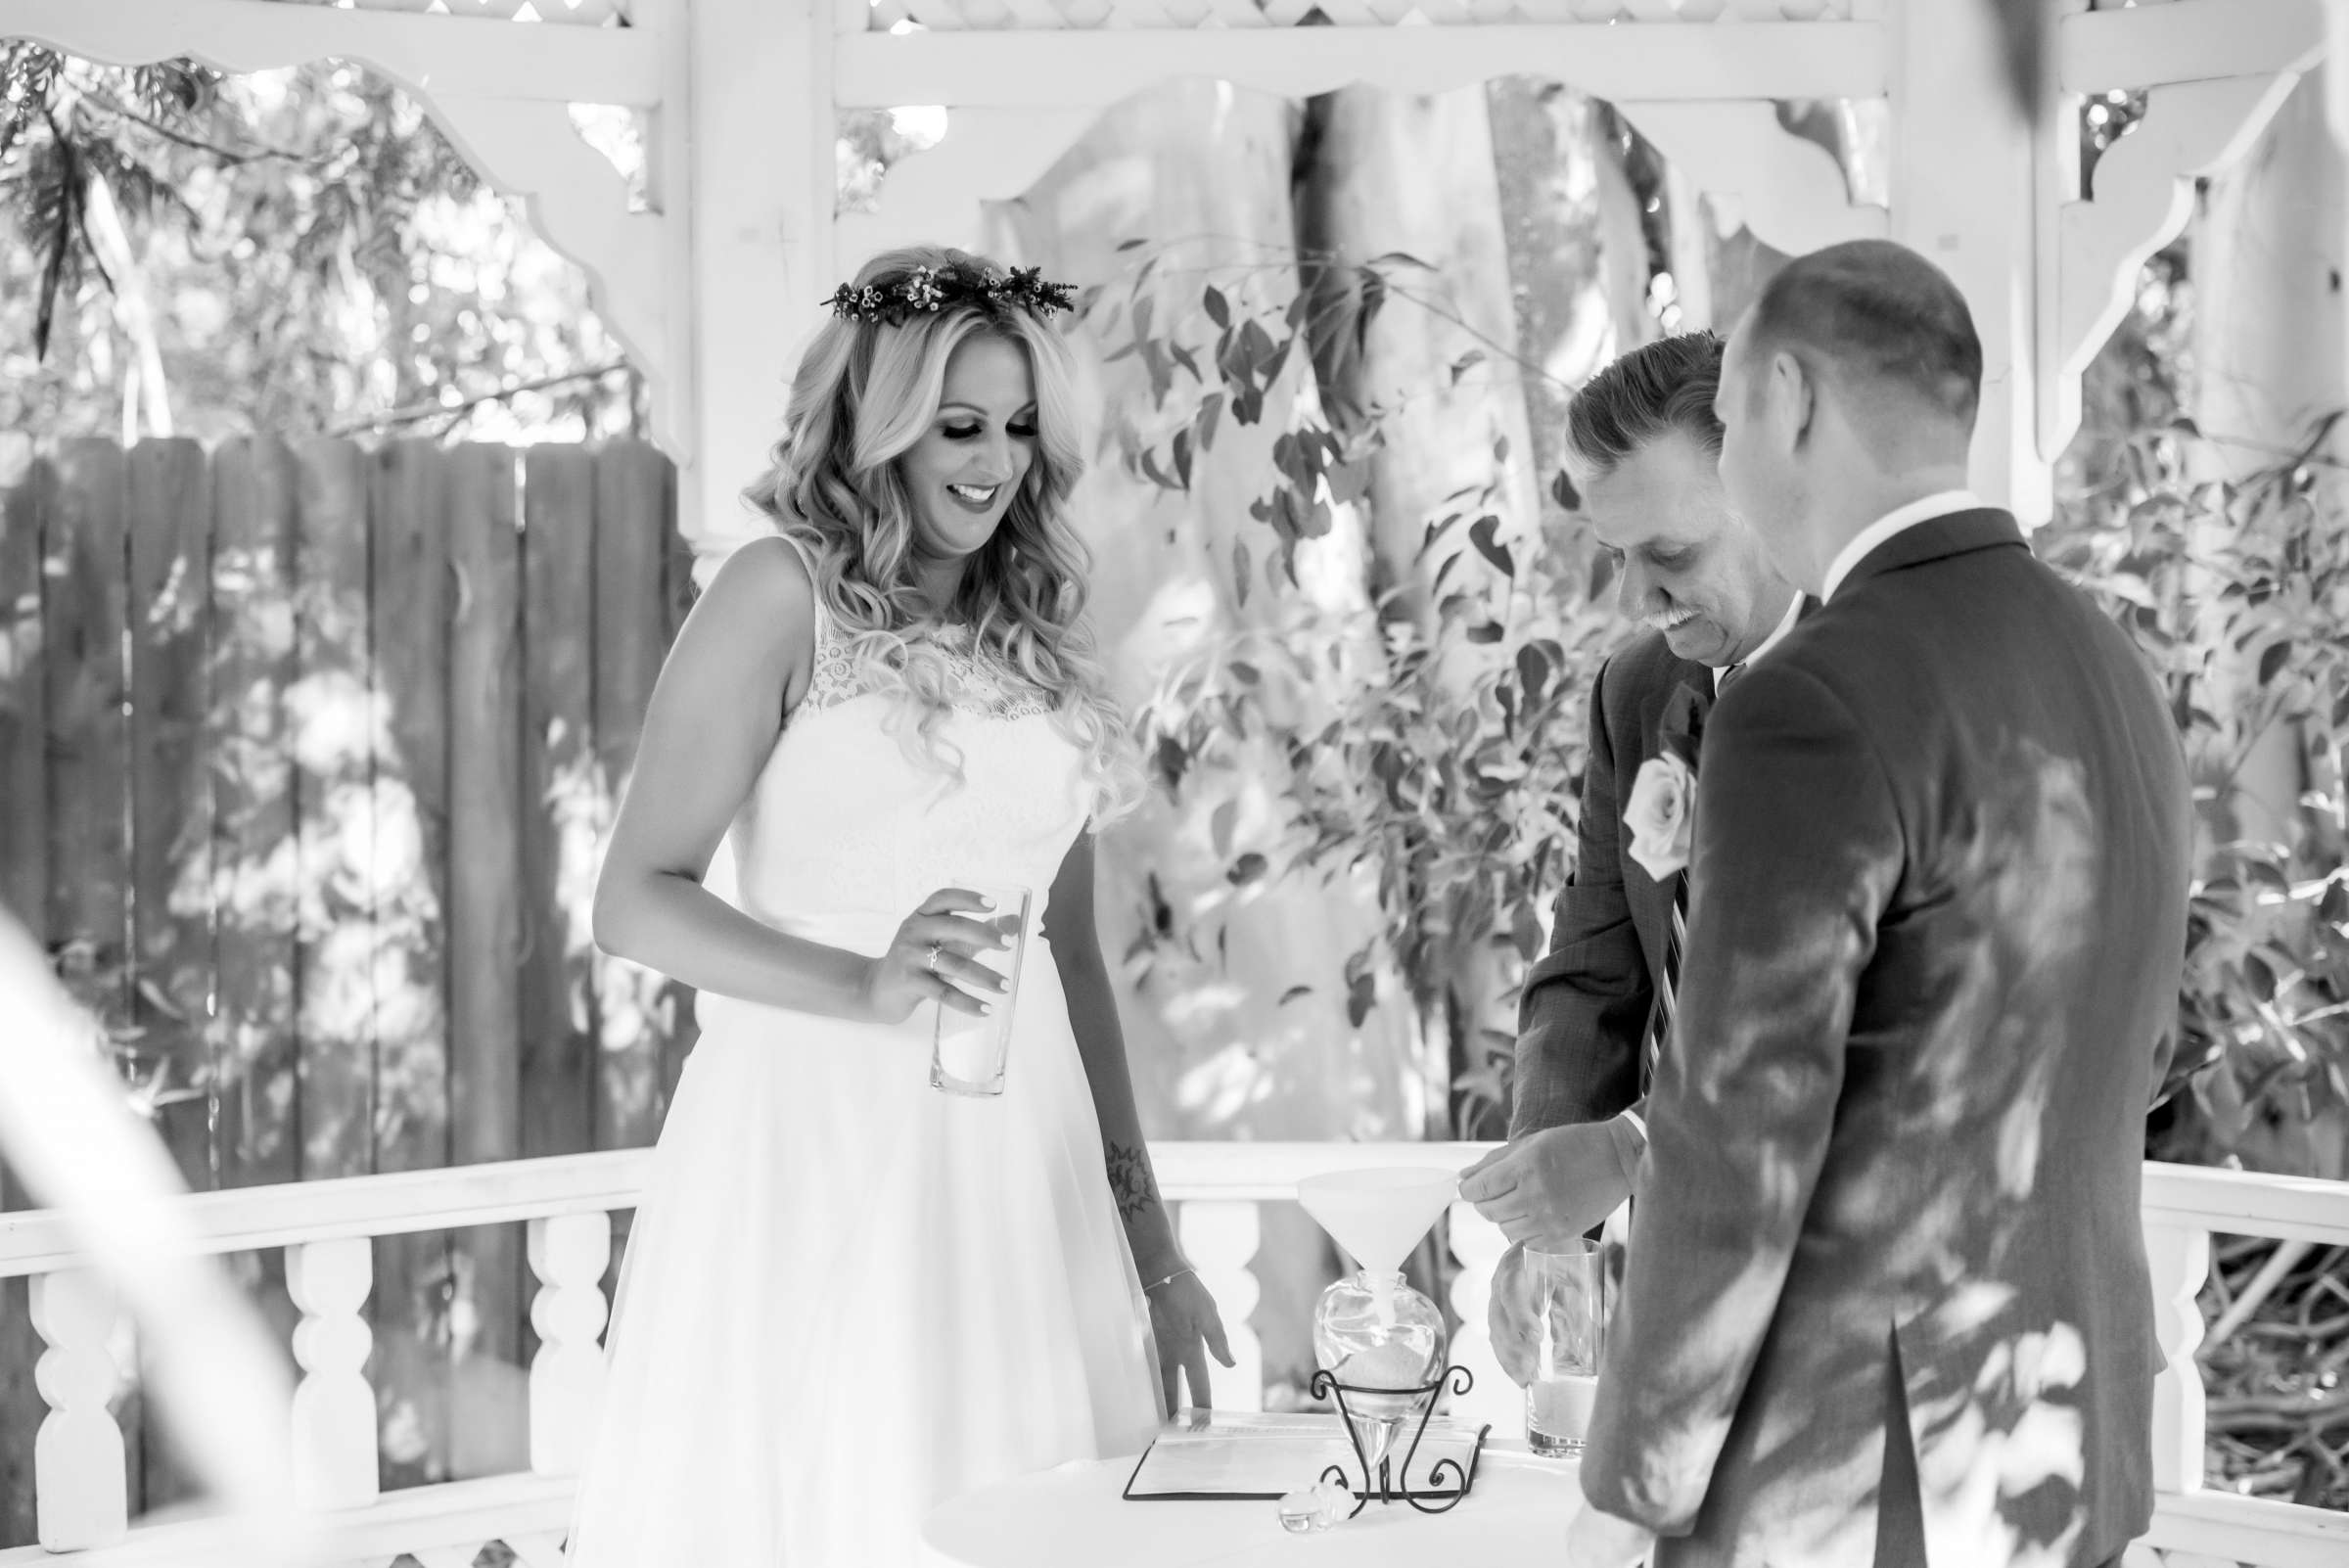 Twin Oaks House & Gardens Wedding Estate Wedding, Brittany and Sean Wedding Photo #83 by True Photography